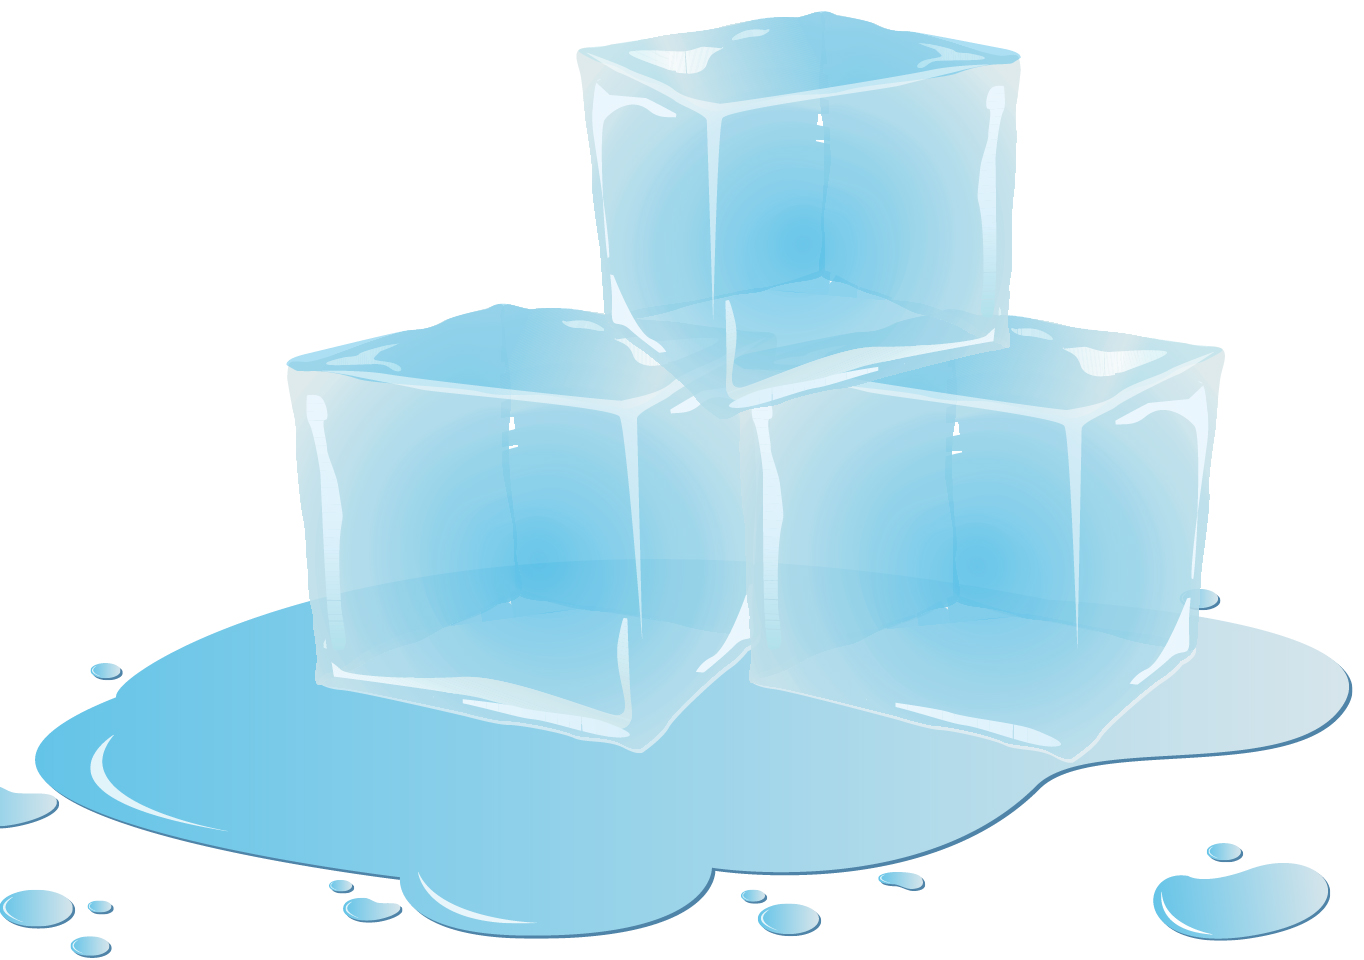 Ice Cube Vector Png | www.pixshark.com - Images Galleries ...